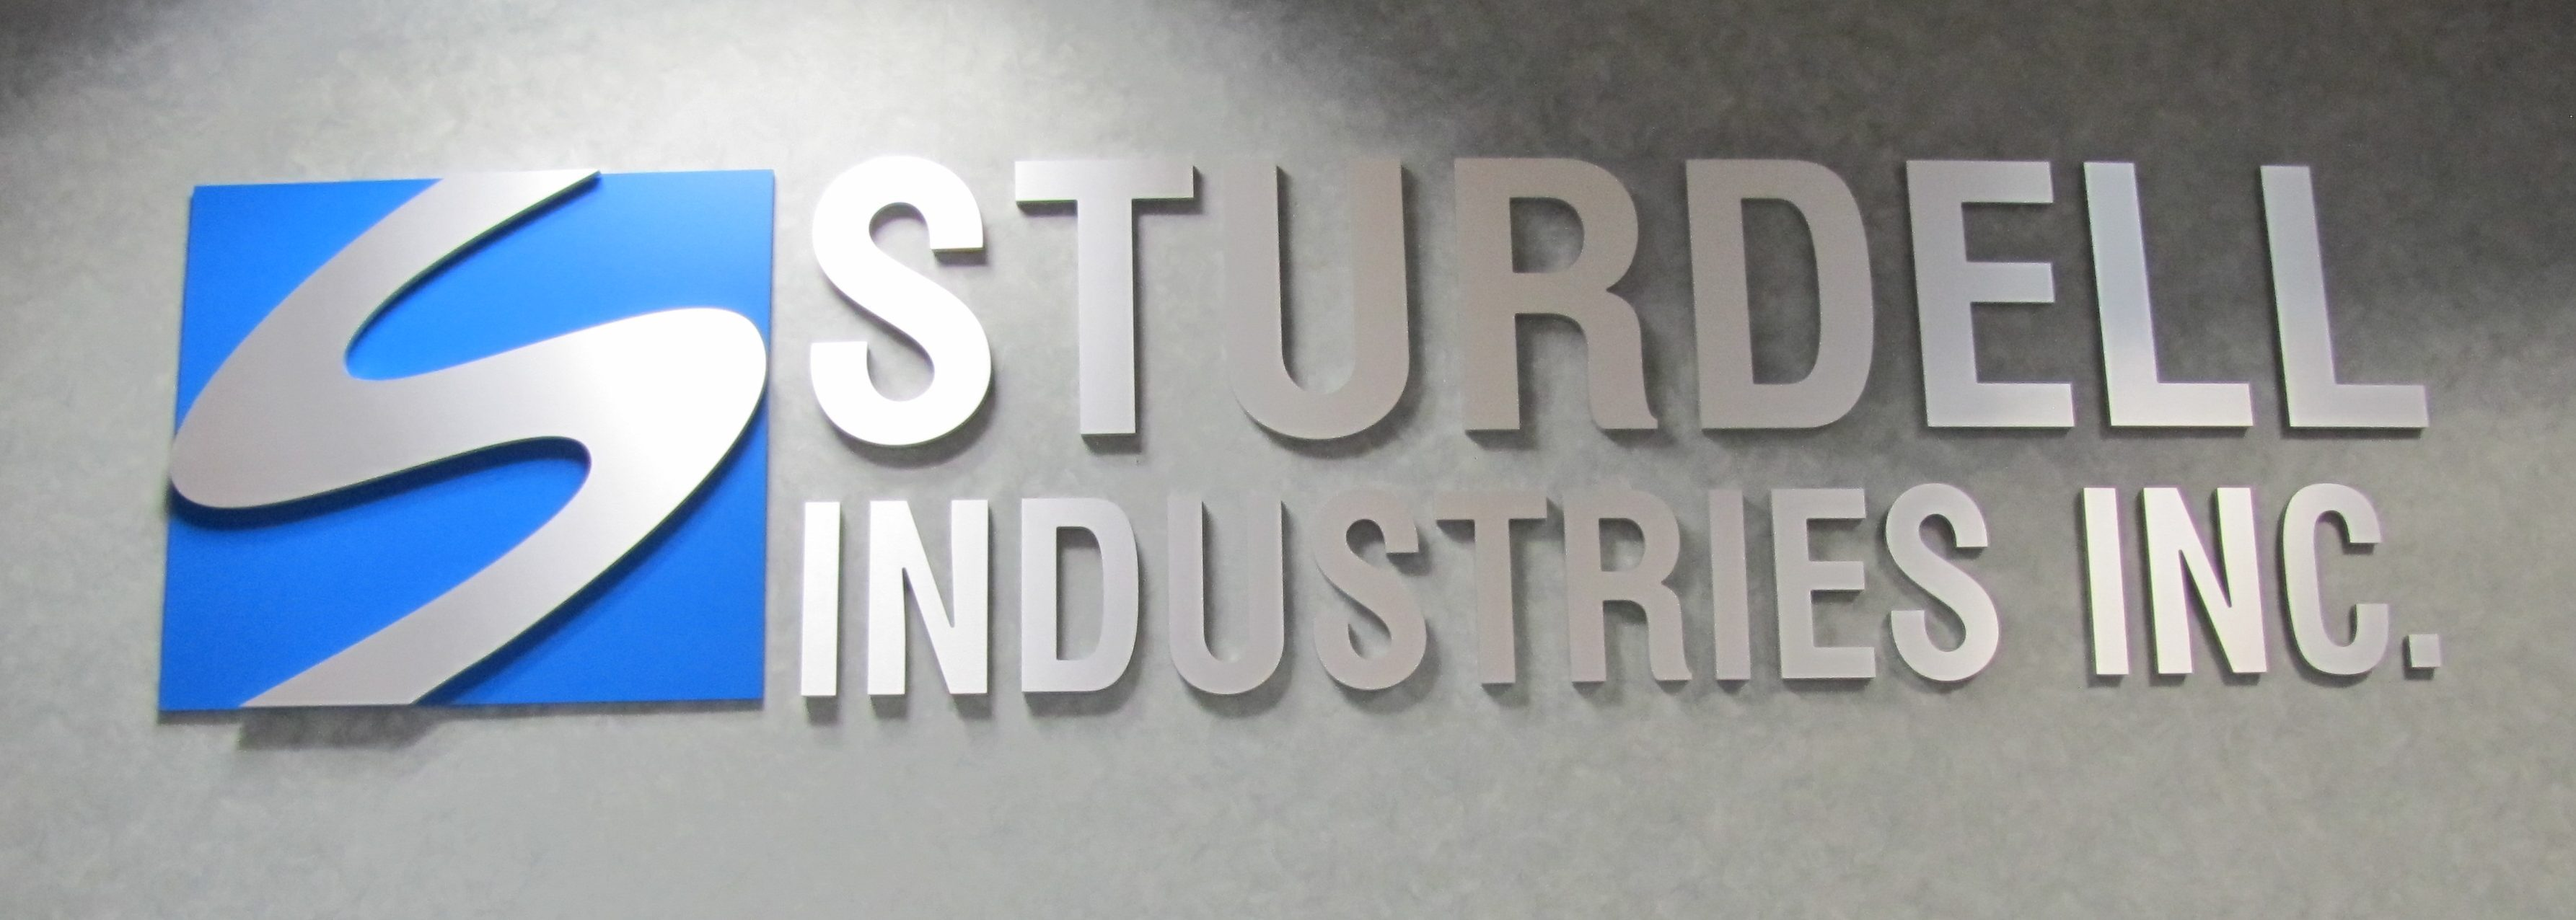 Tool and Mold Steels - Sturdell Industries Inc